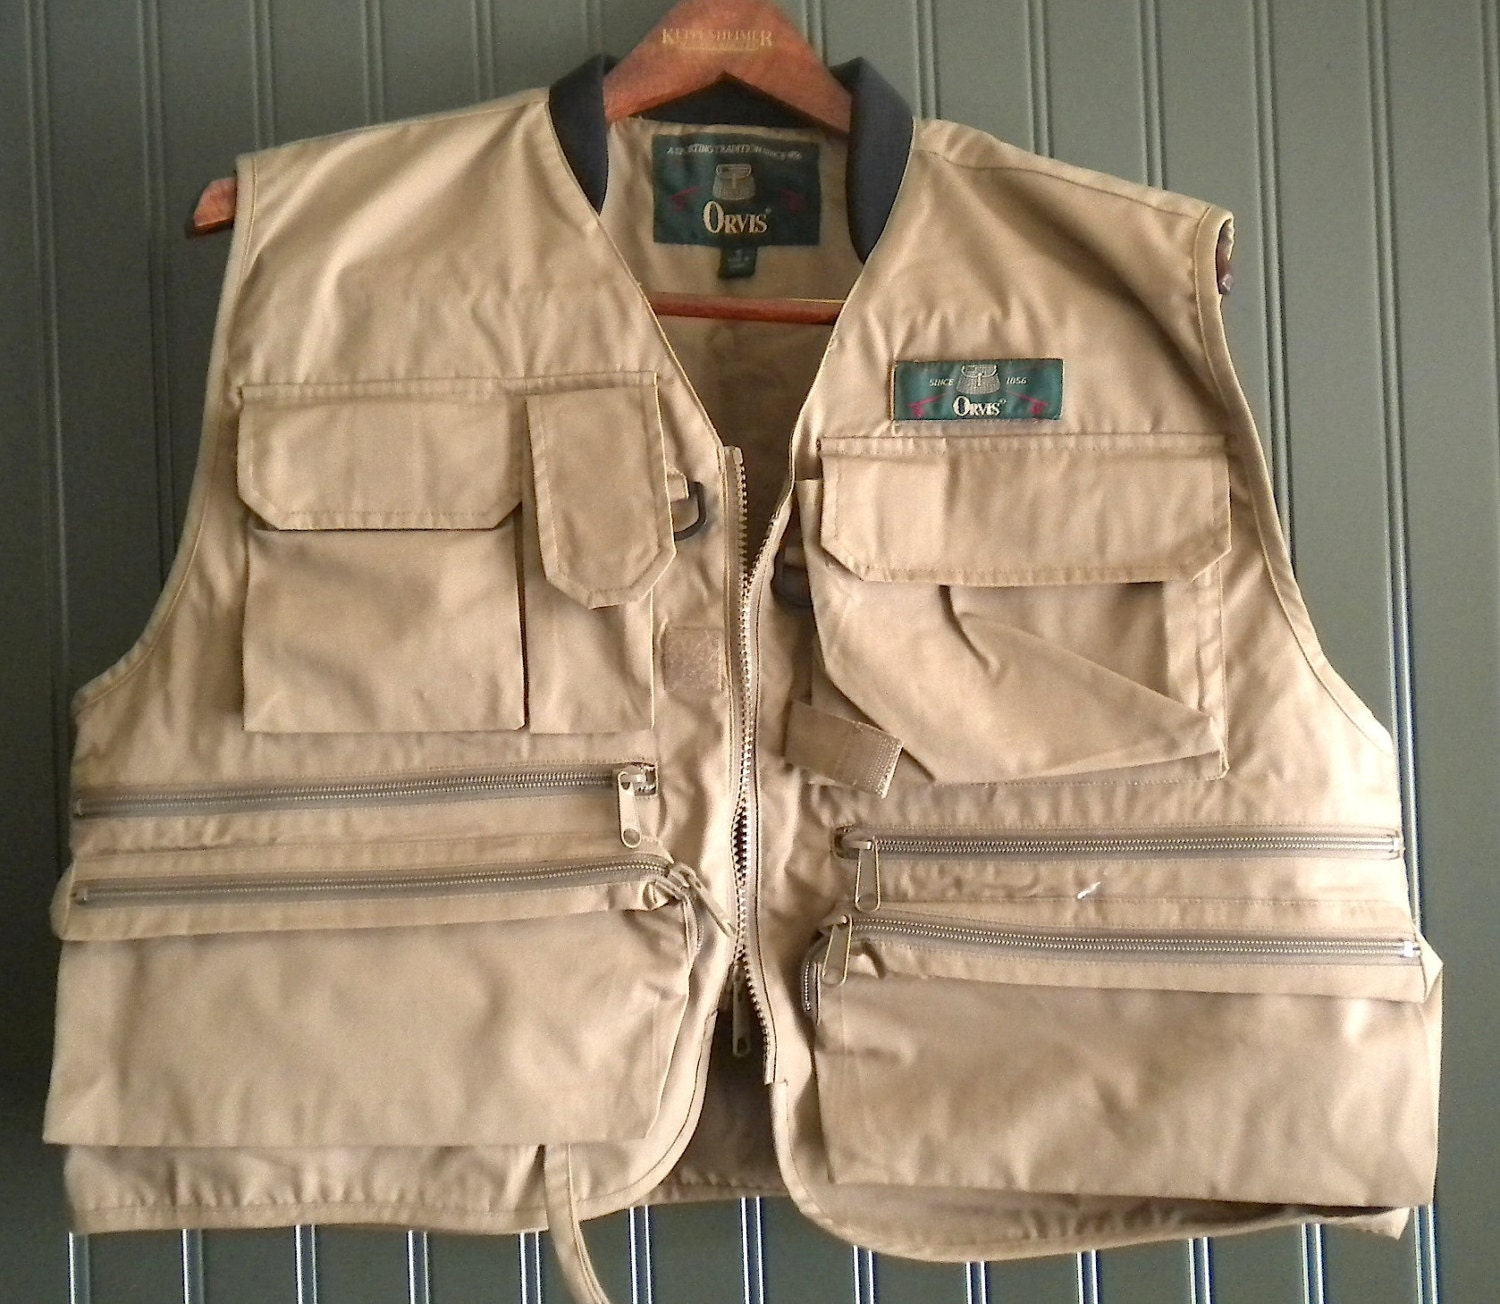 Newer vintage orvis fly fishing vest small unisex youth for Orvis fishing vest